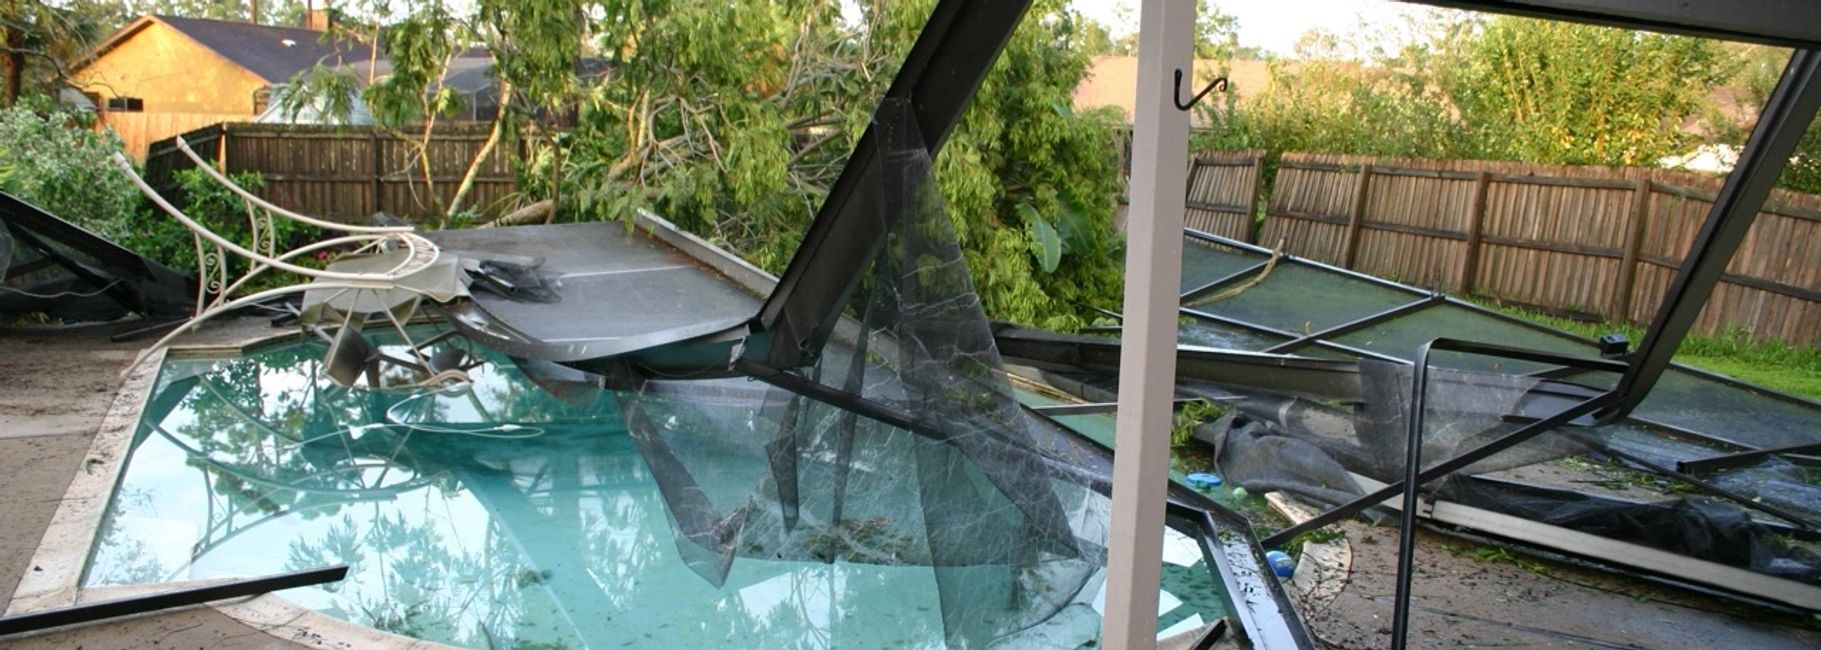 hurricane knocked pool cage over and trees